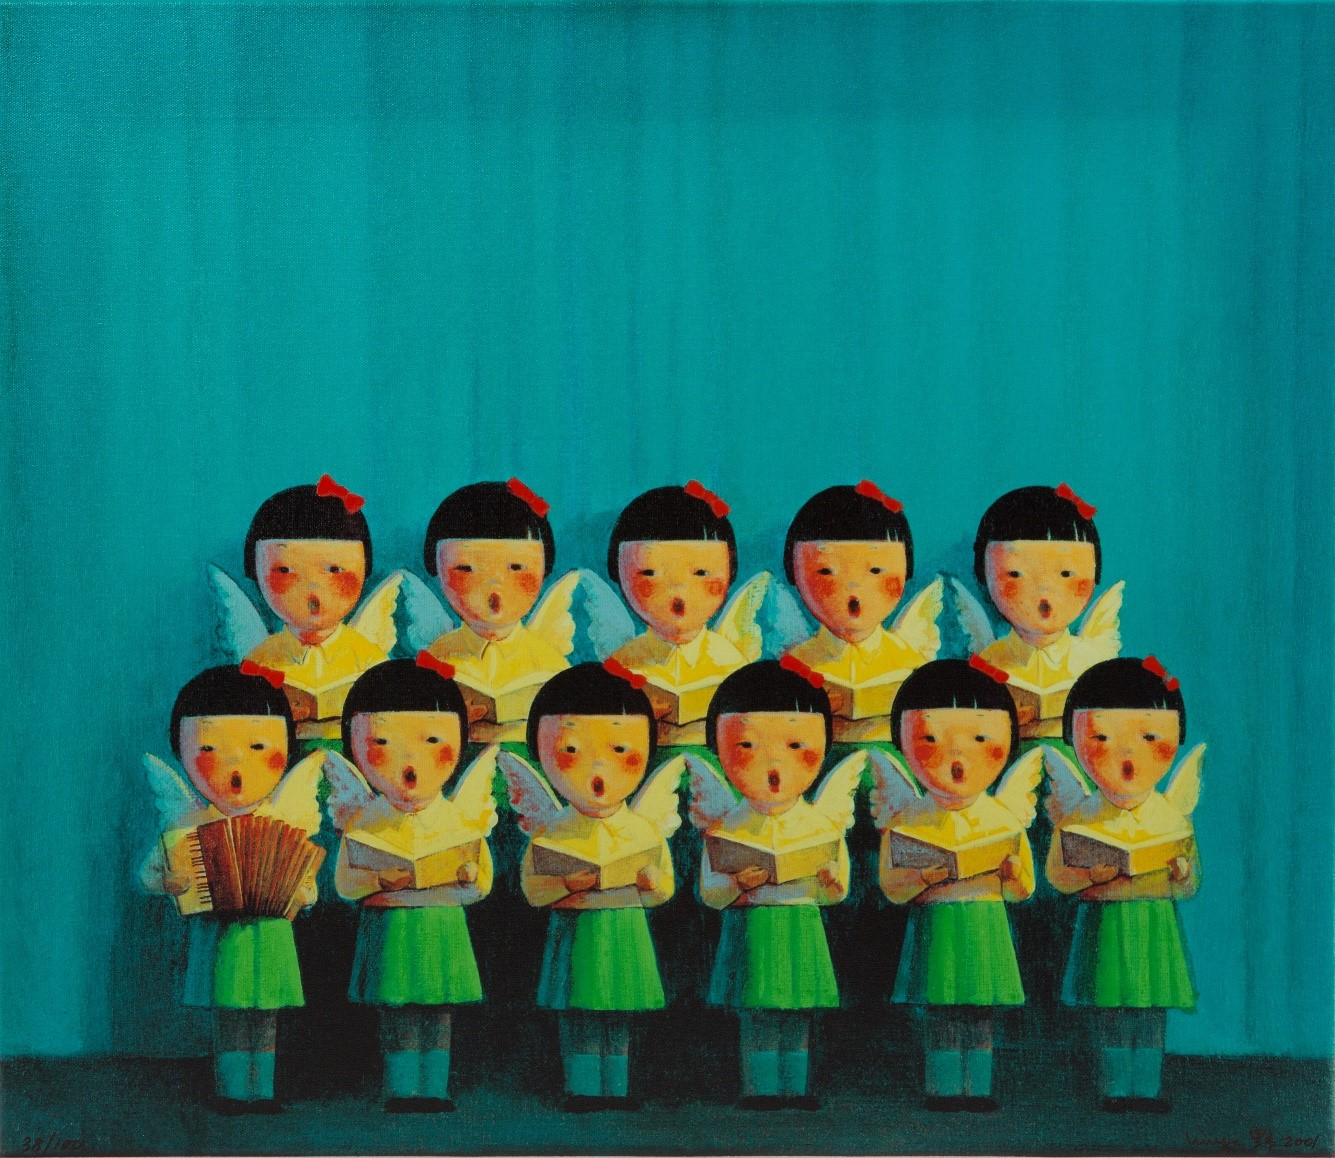 Liu Ye, Choir, Silkscreenprint with handpainted bowties, signed and numbered, 38/100 60x70cm.